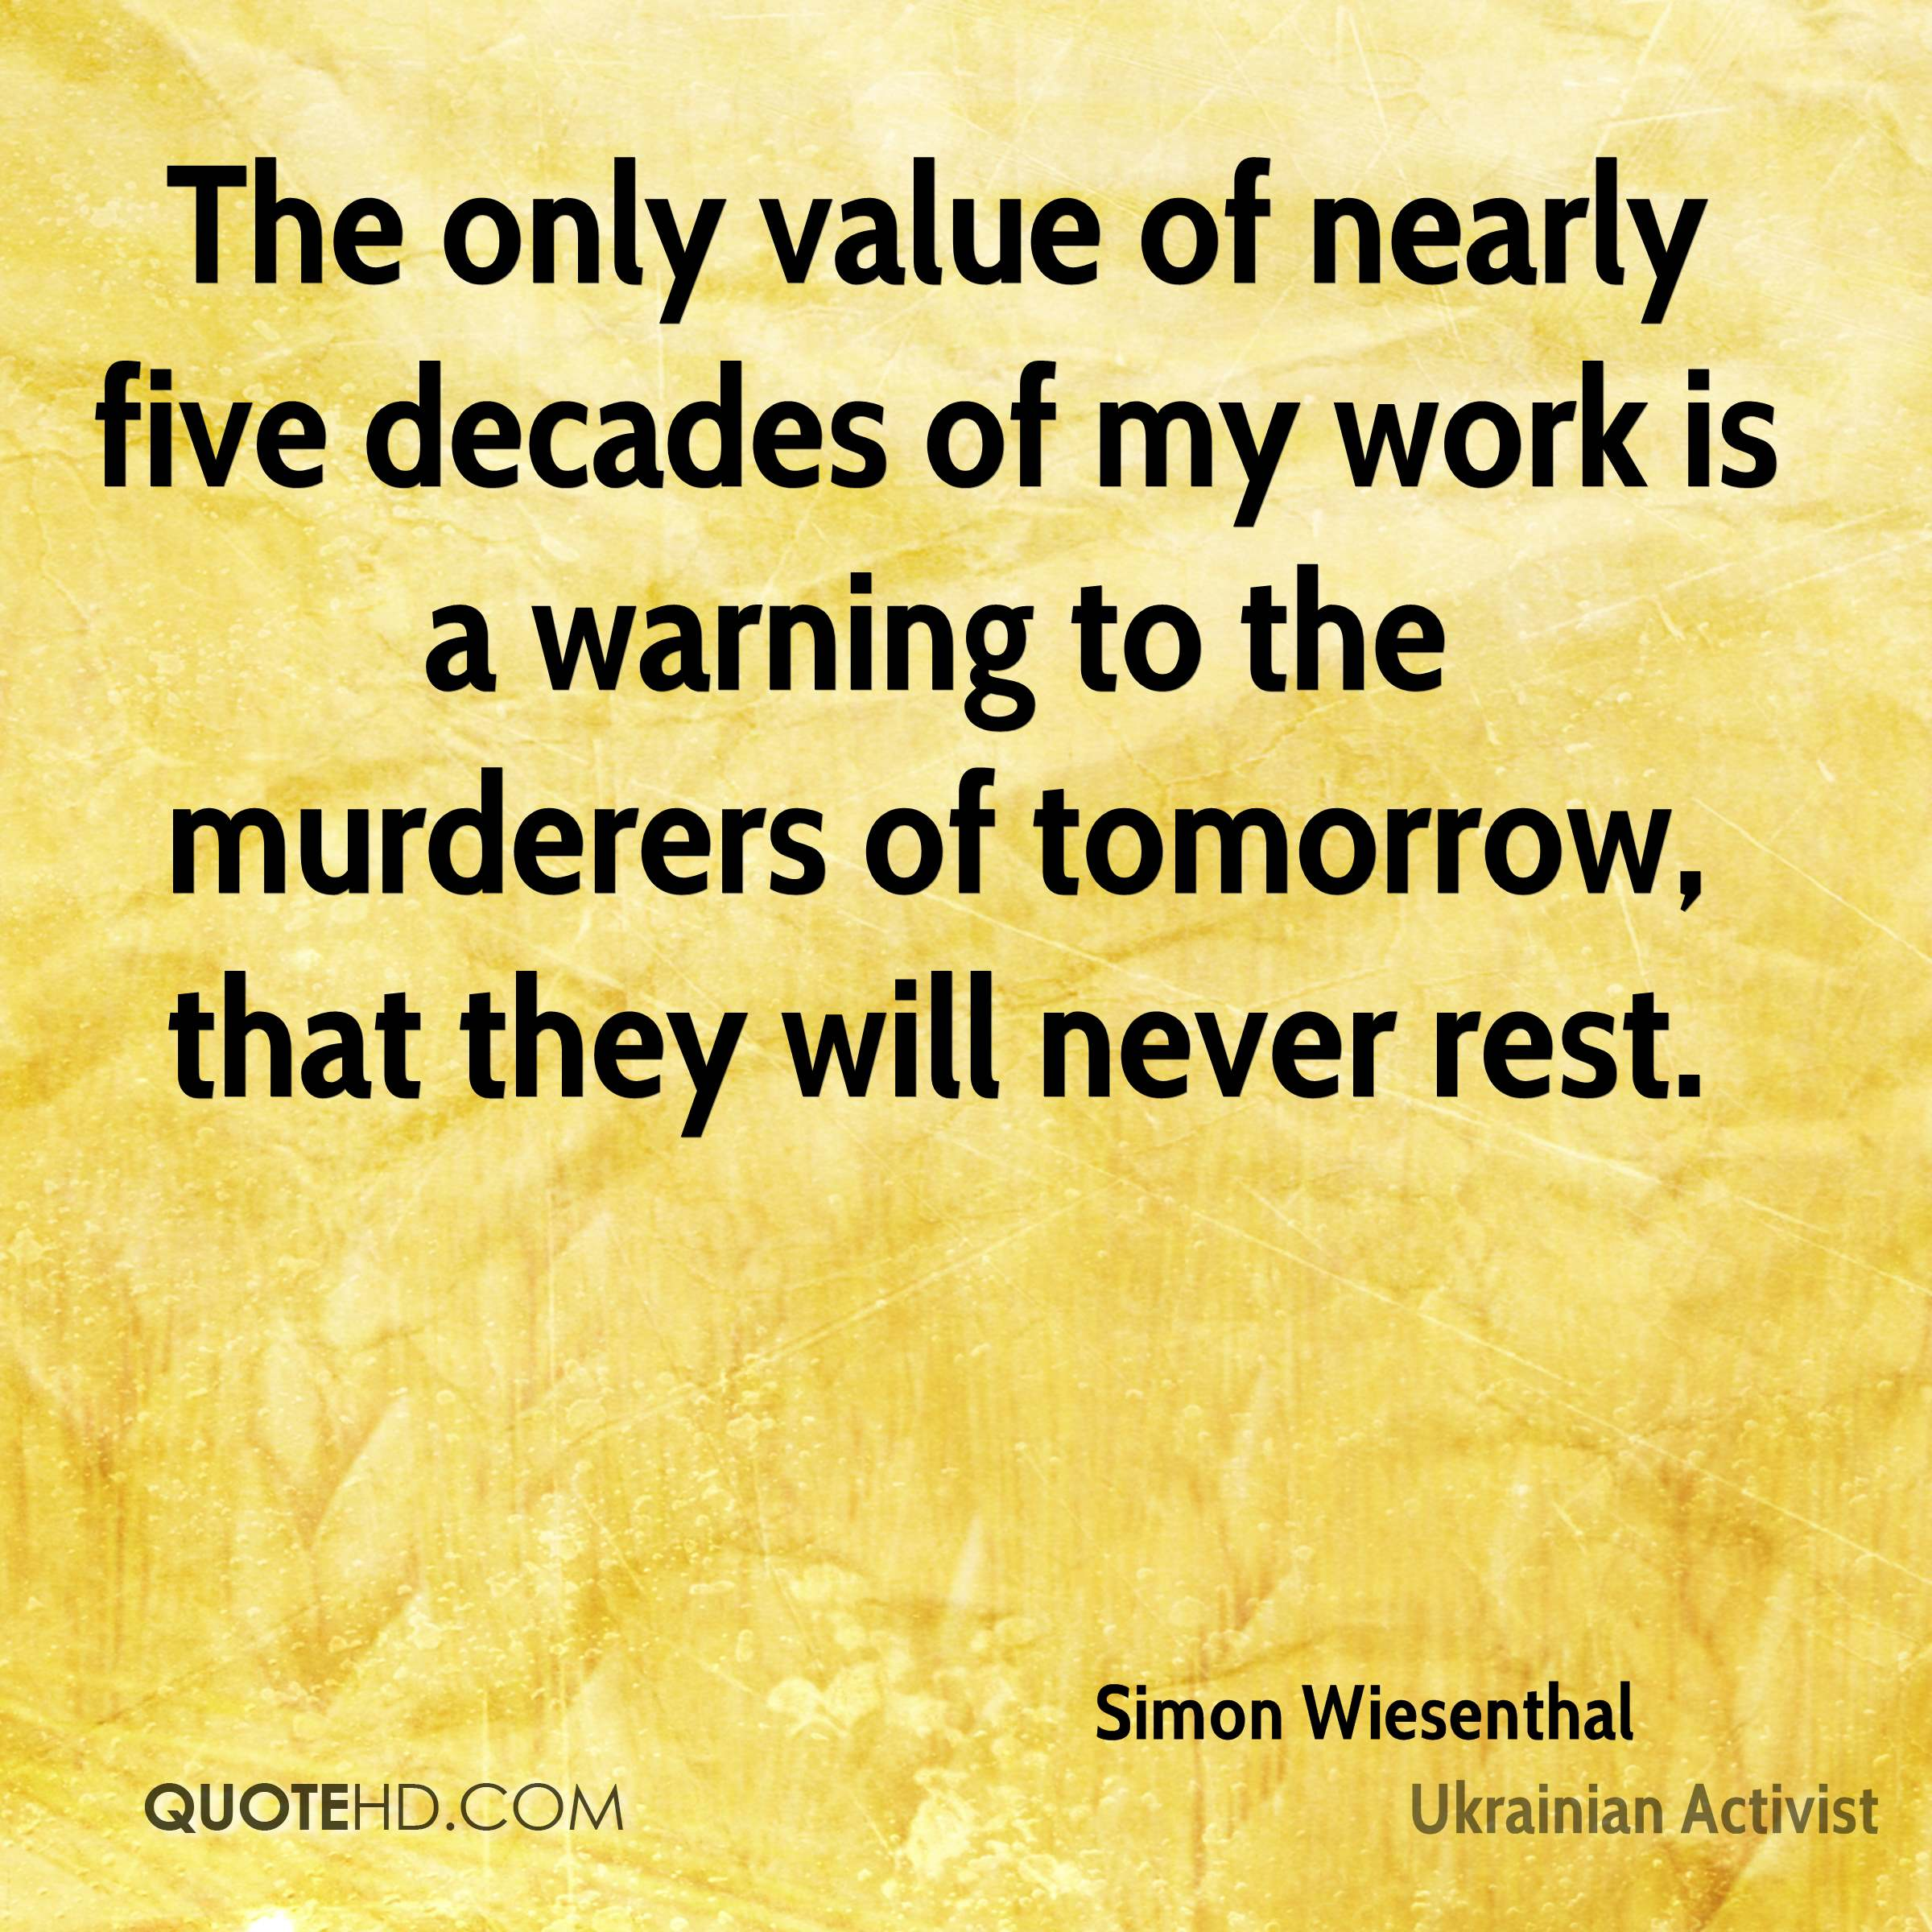 The only value of nearly five decades of my work is a warning to the murderers of tomorrow, that they will never rest.